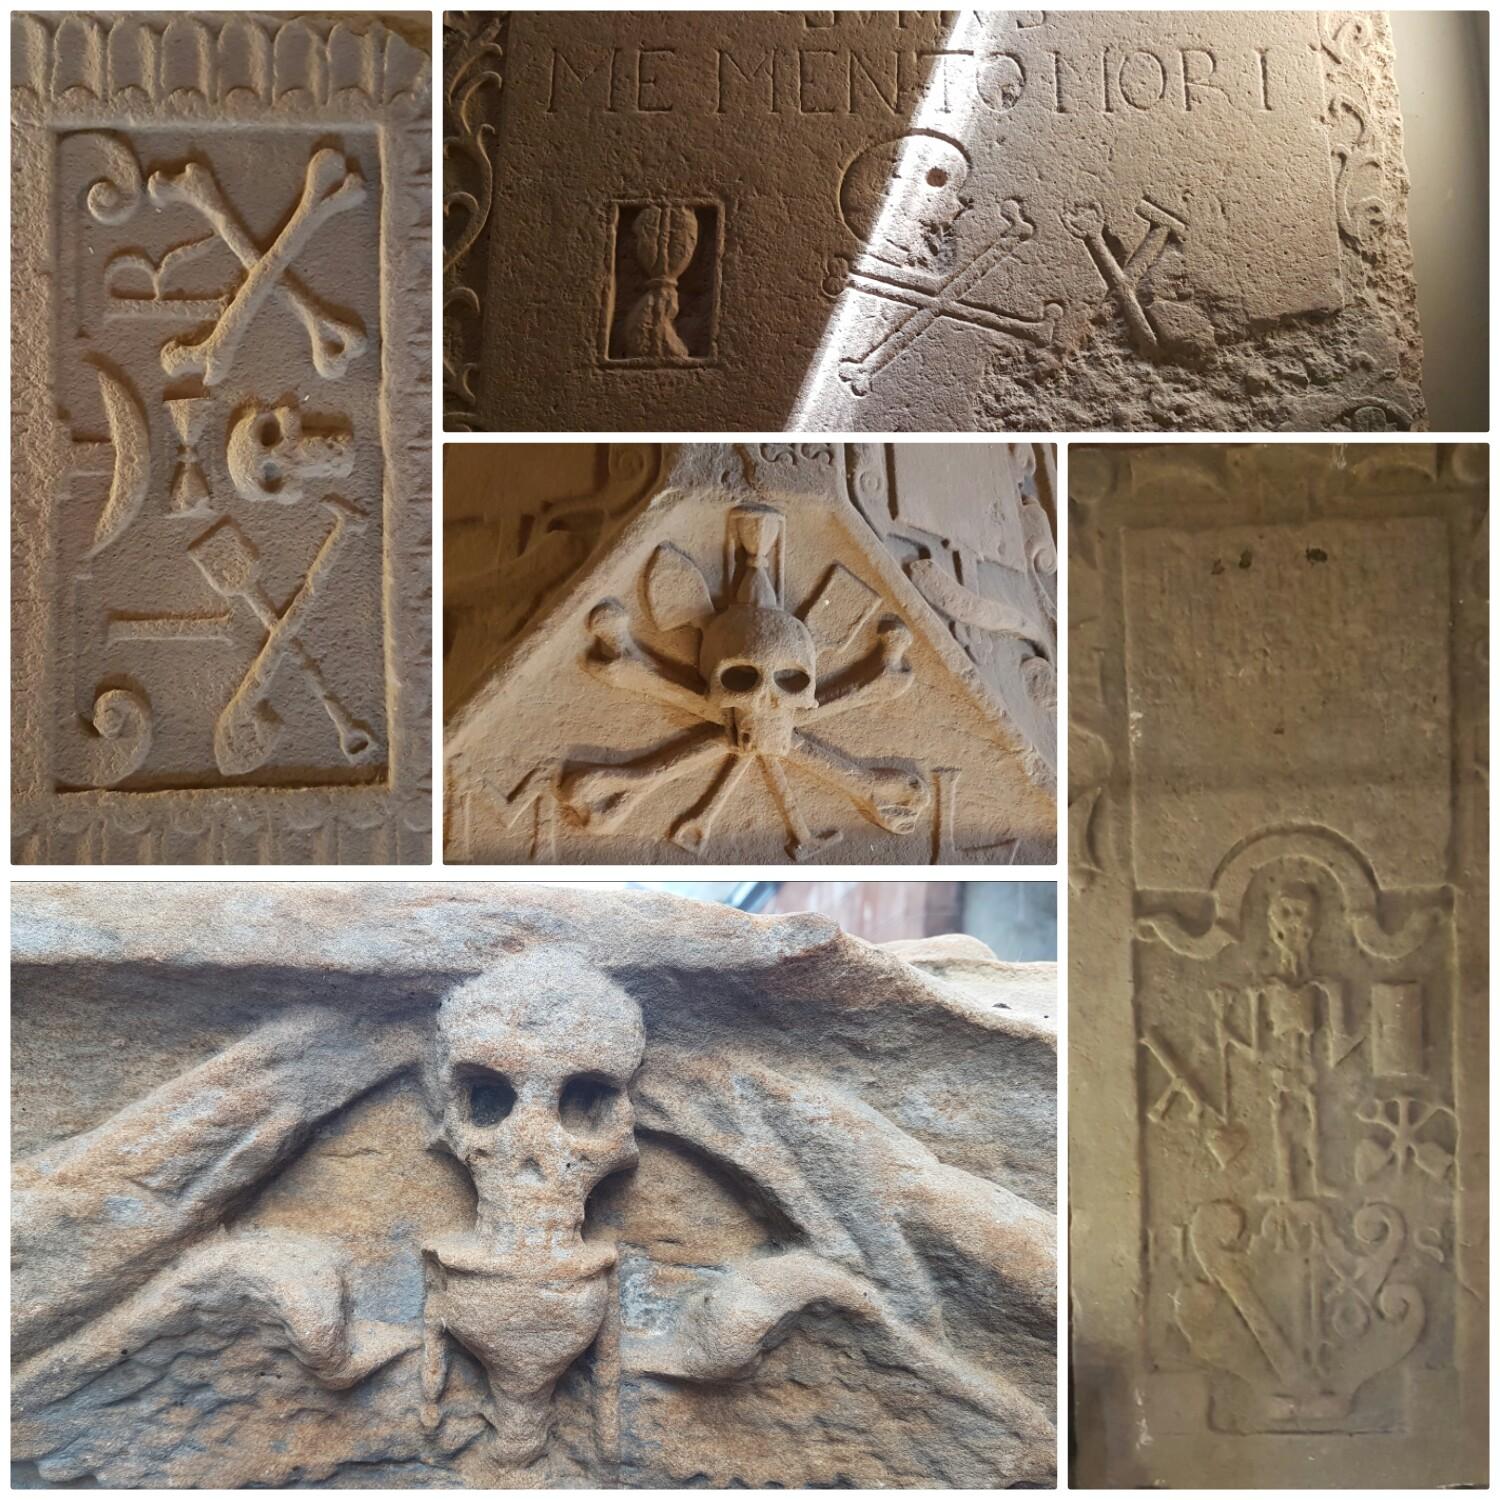 A collage of tombstones from St Andrews Cathedral, with skull and cross bones and hour glass carvings.